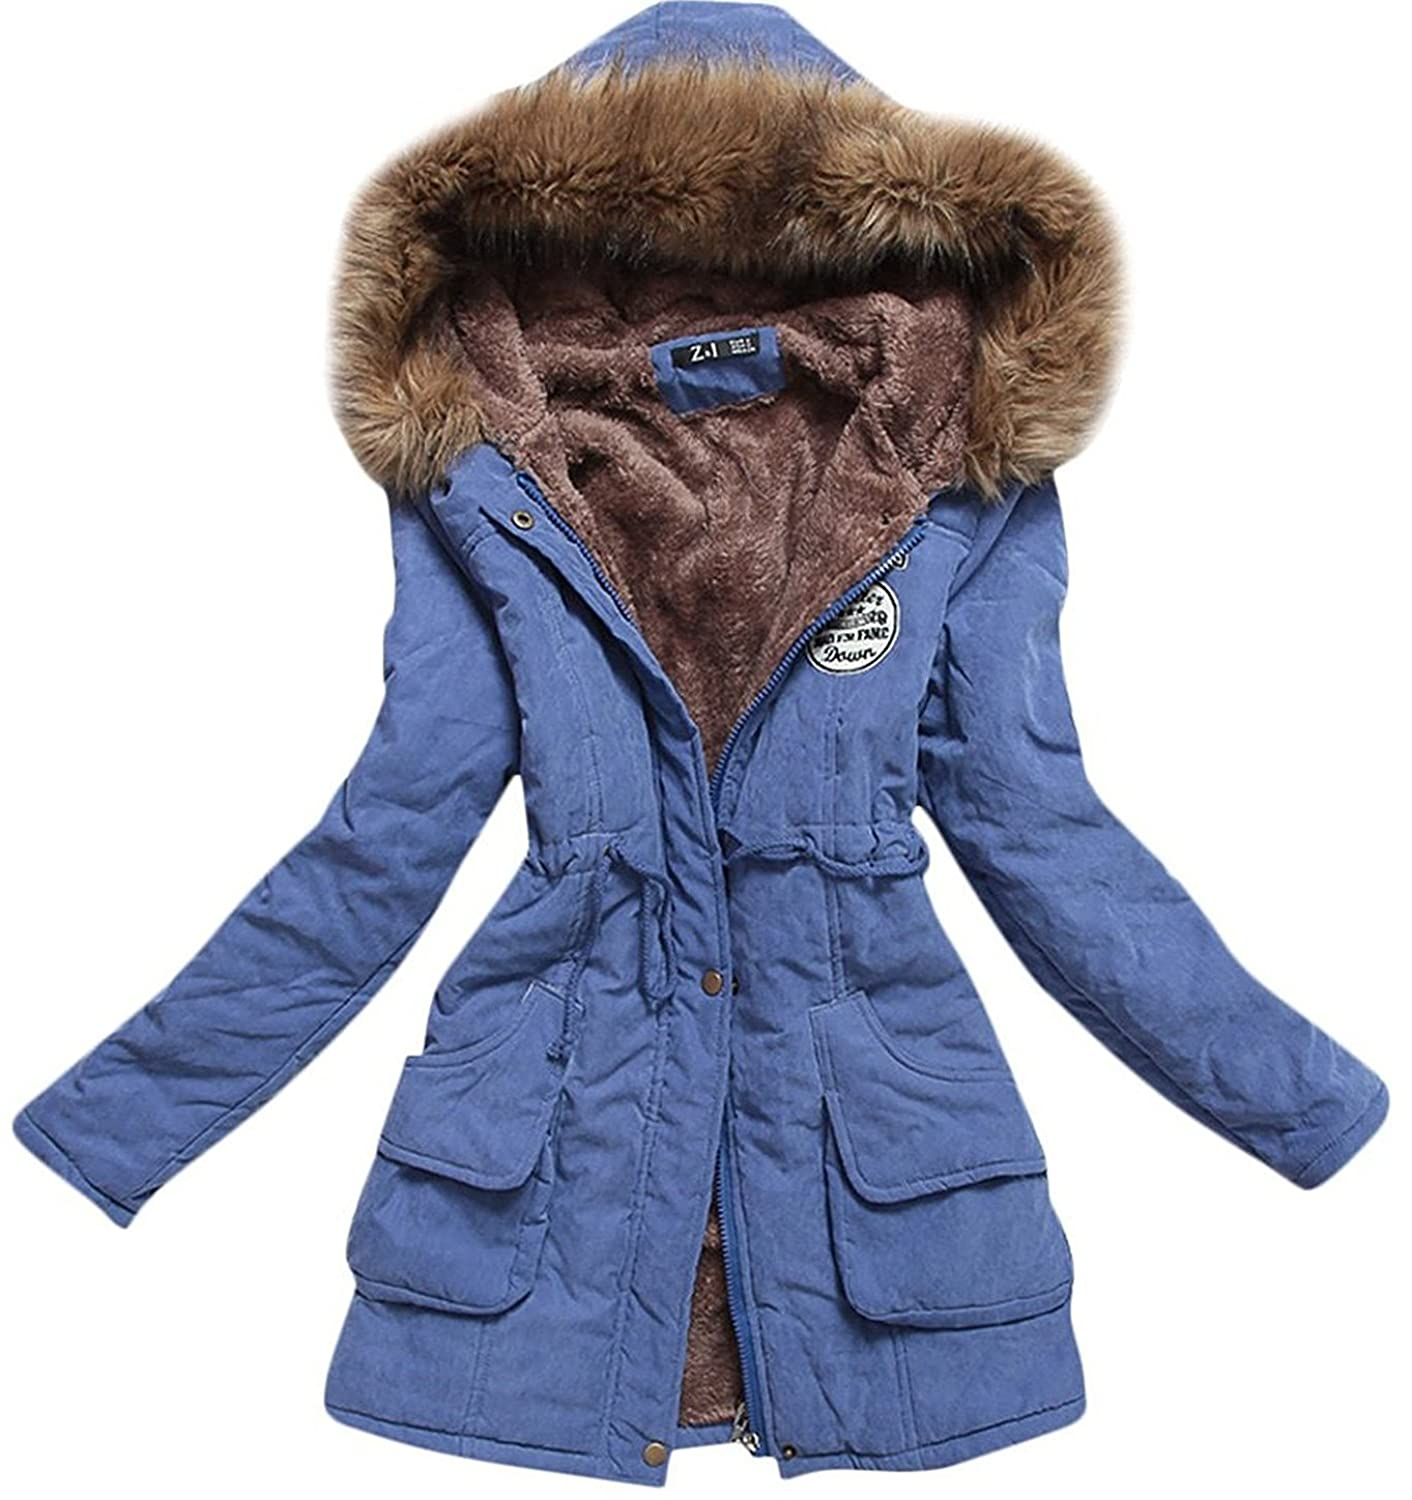 Aro Lora Women's Faux Fur Hooded Cotton-Padded Parka Long Jacket ...